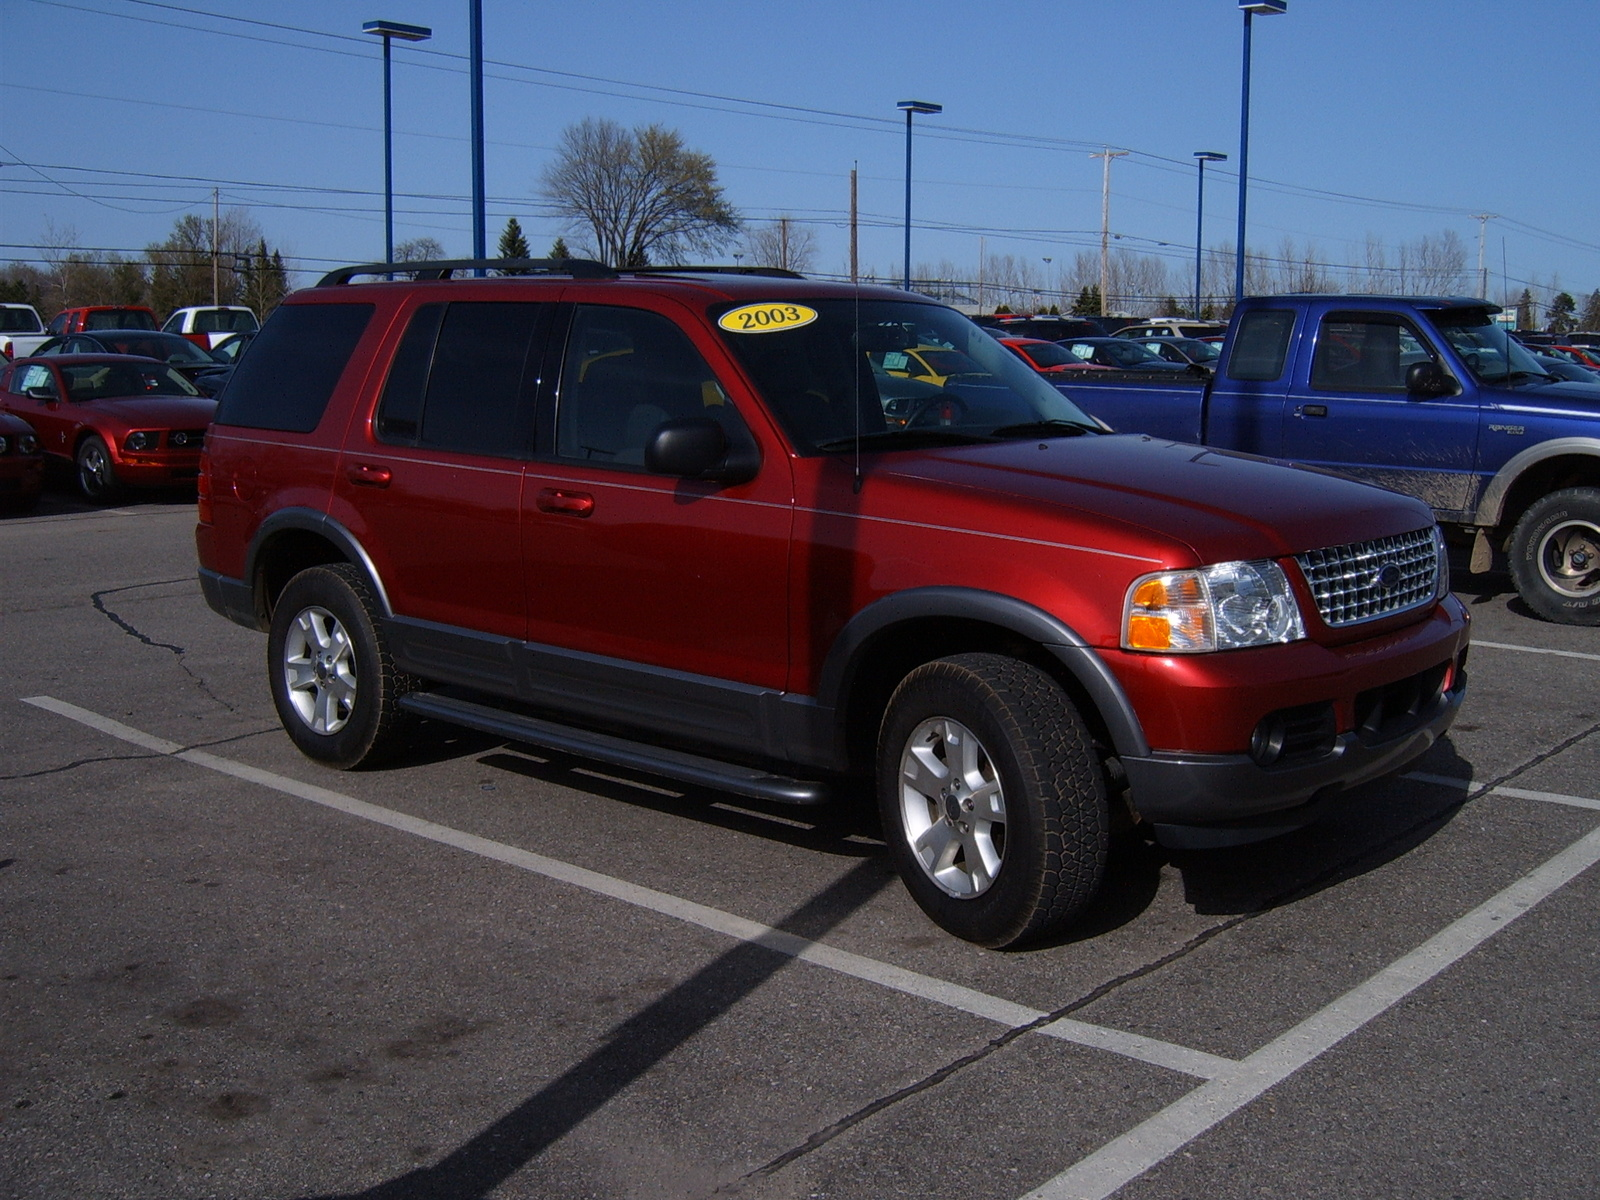 2003 ford explorer pictures cargurus. Cars Review. Best American Auto & Cars Review